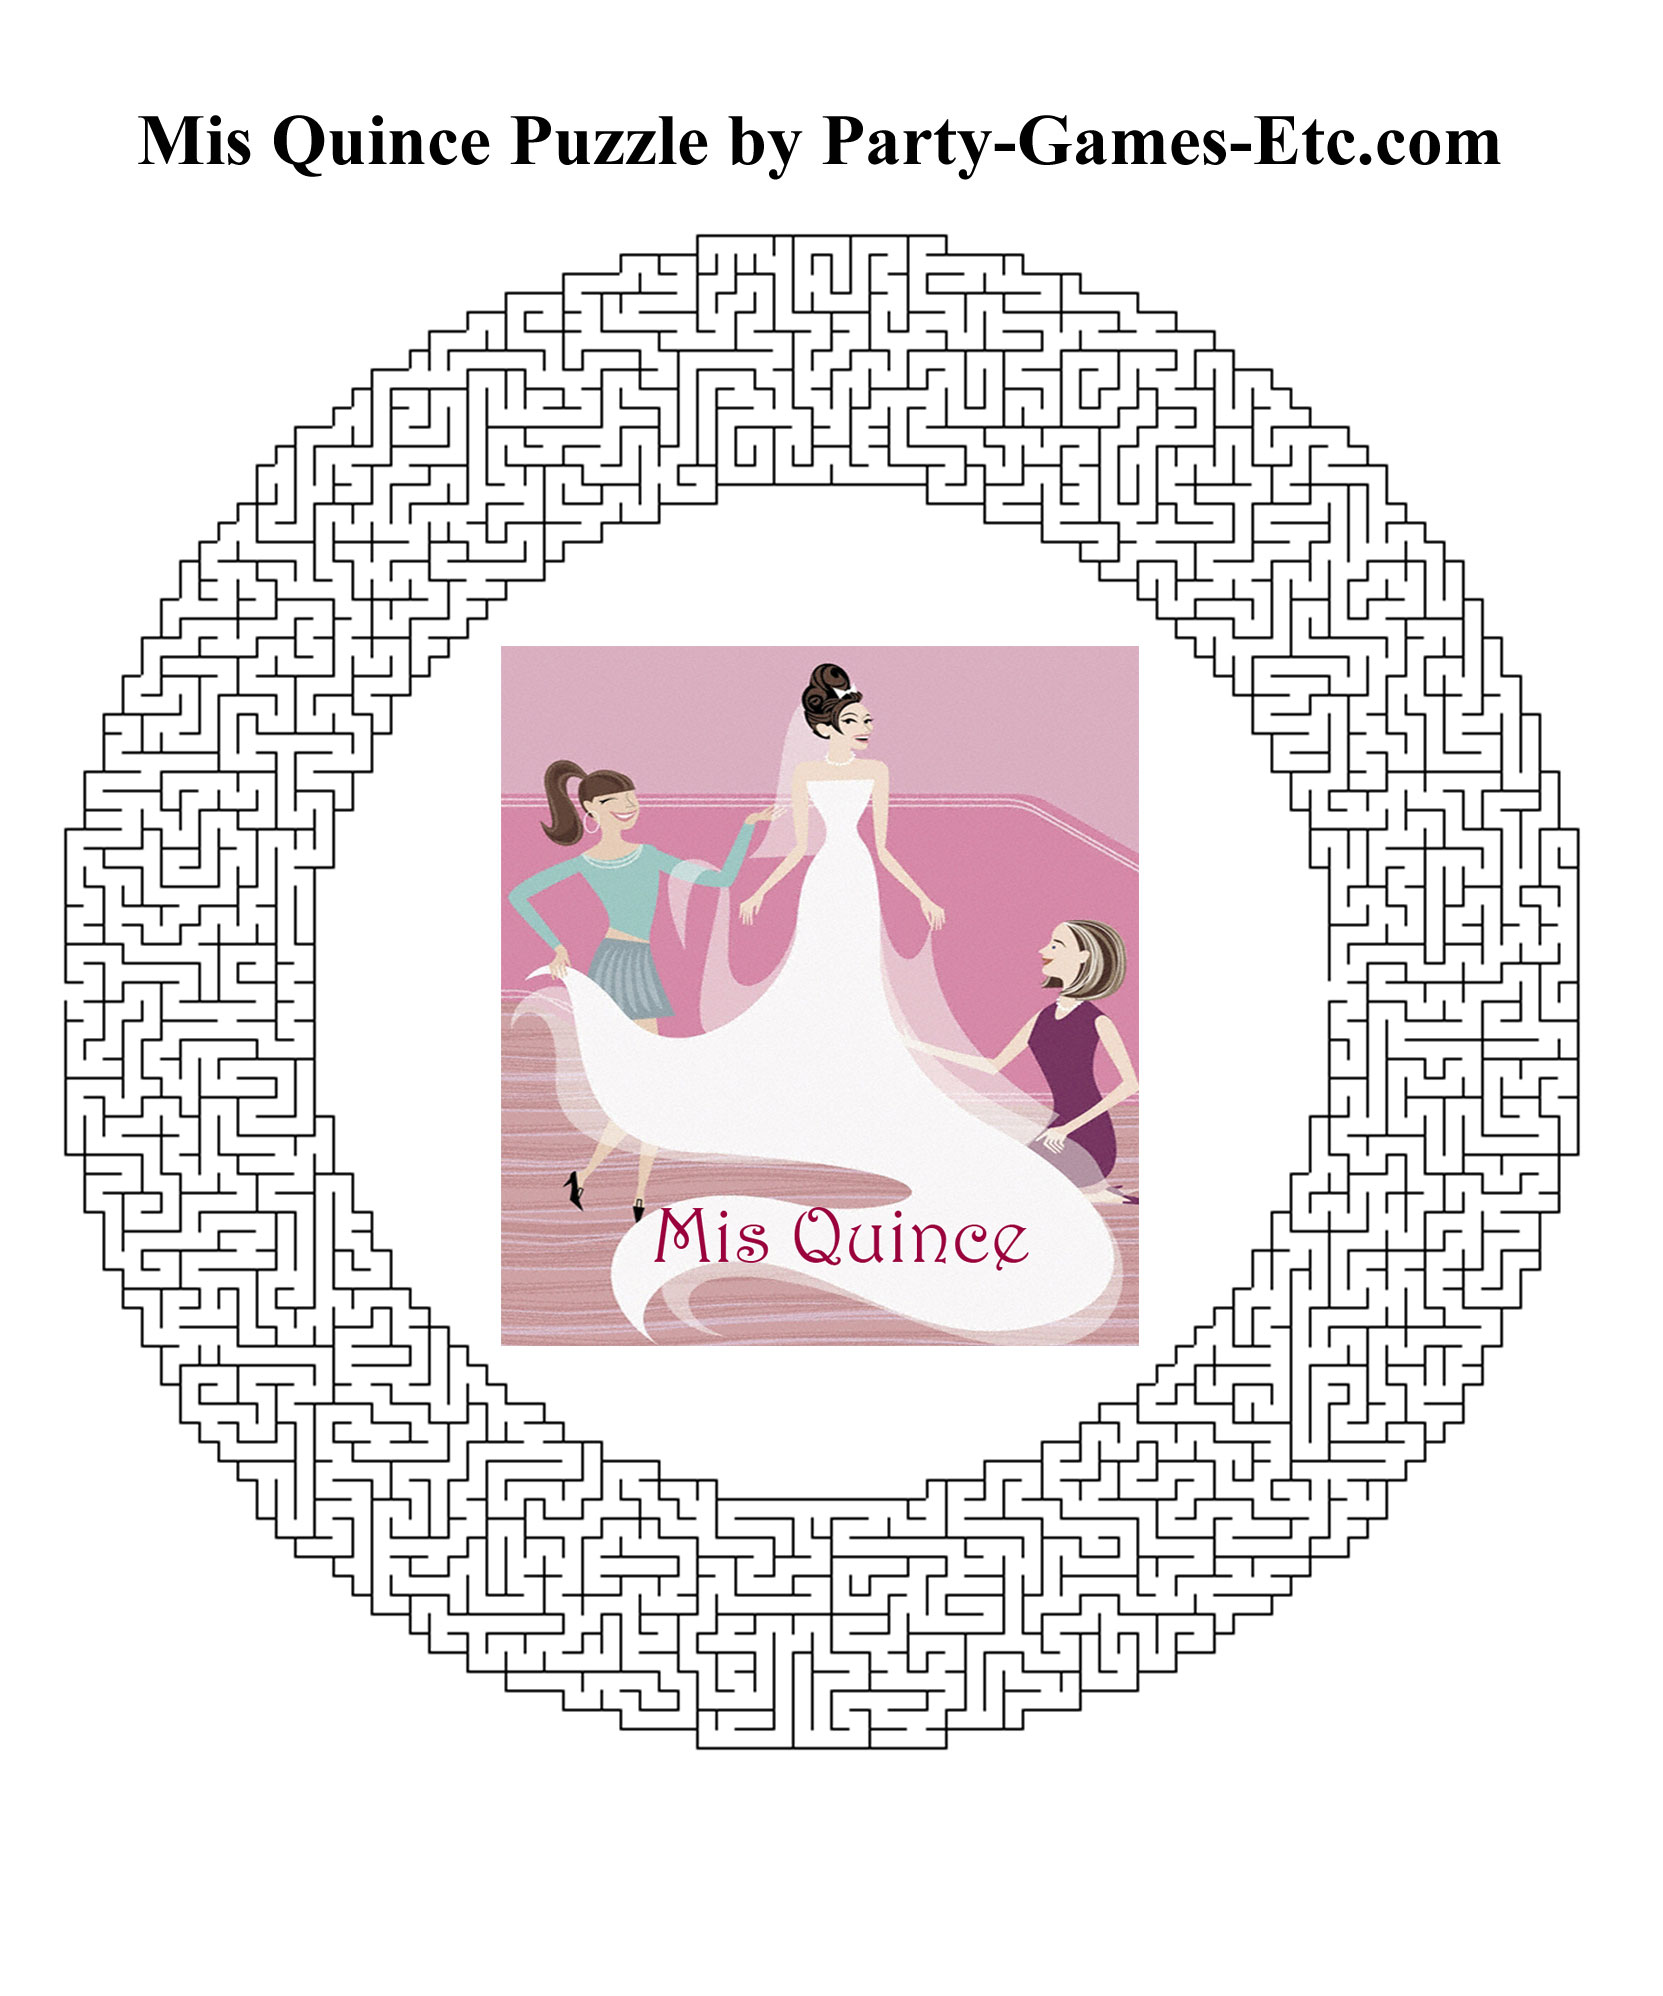 Free Printable Mis Quince Party Game and Pen and Paper Activity